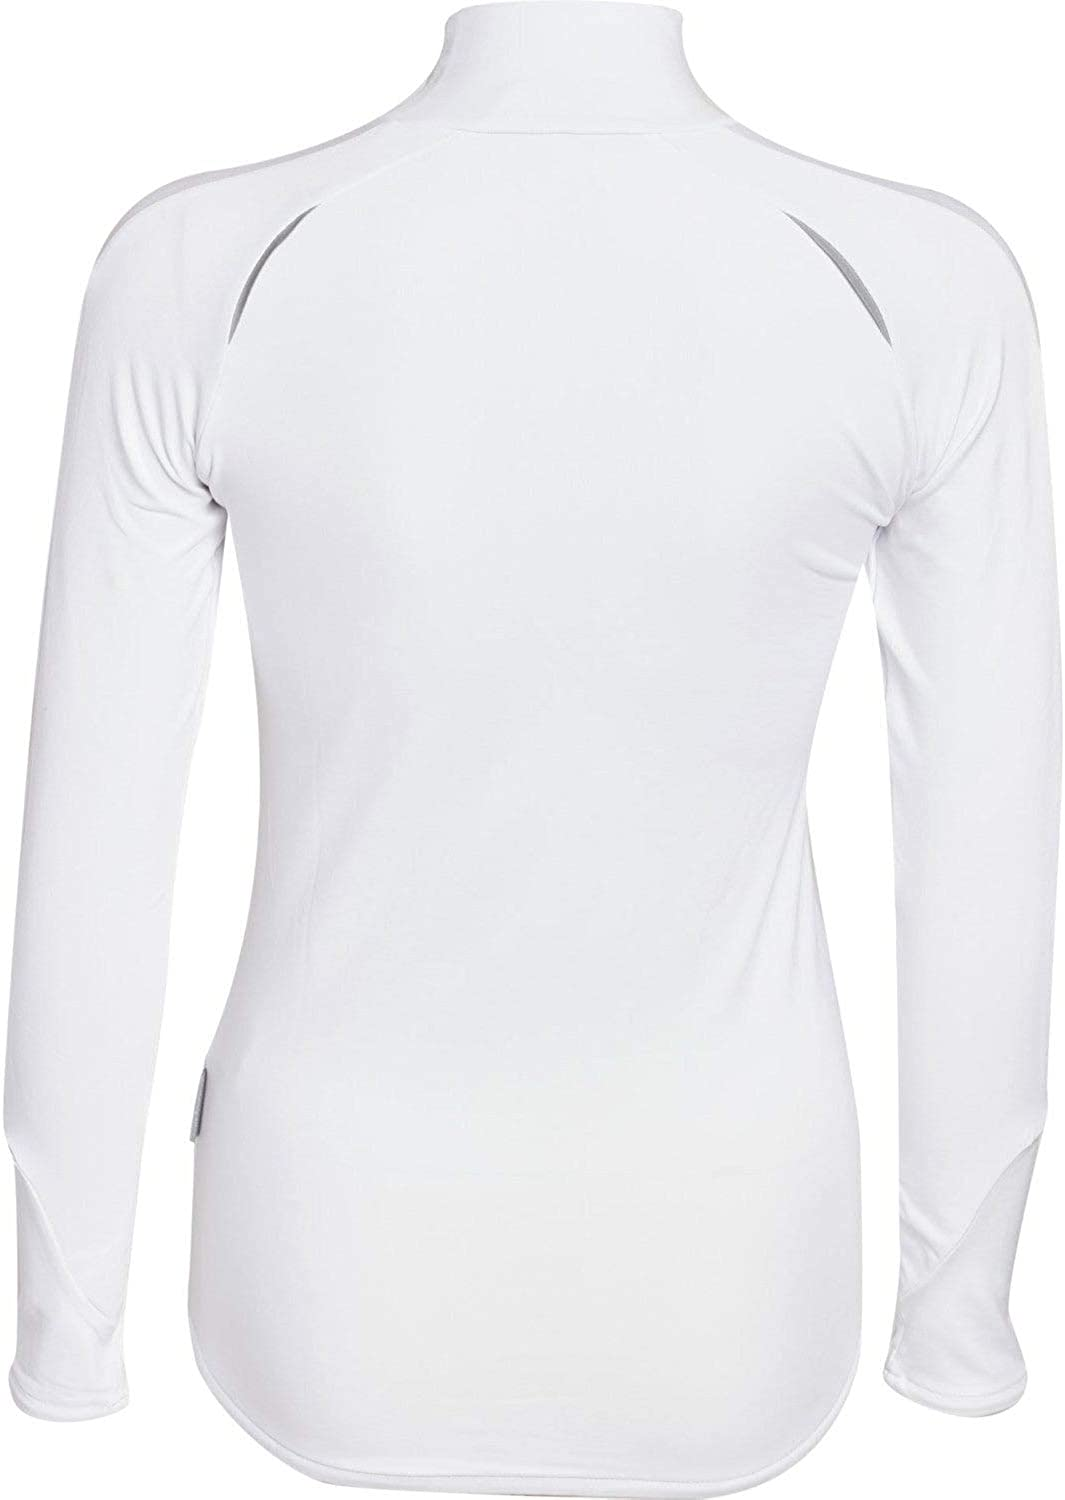 Horseware Long Sleeve Base Layer Large White